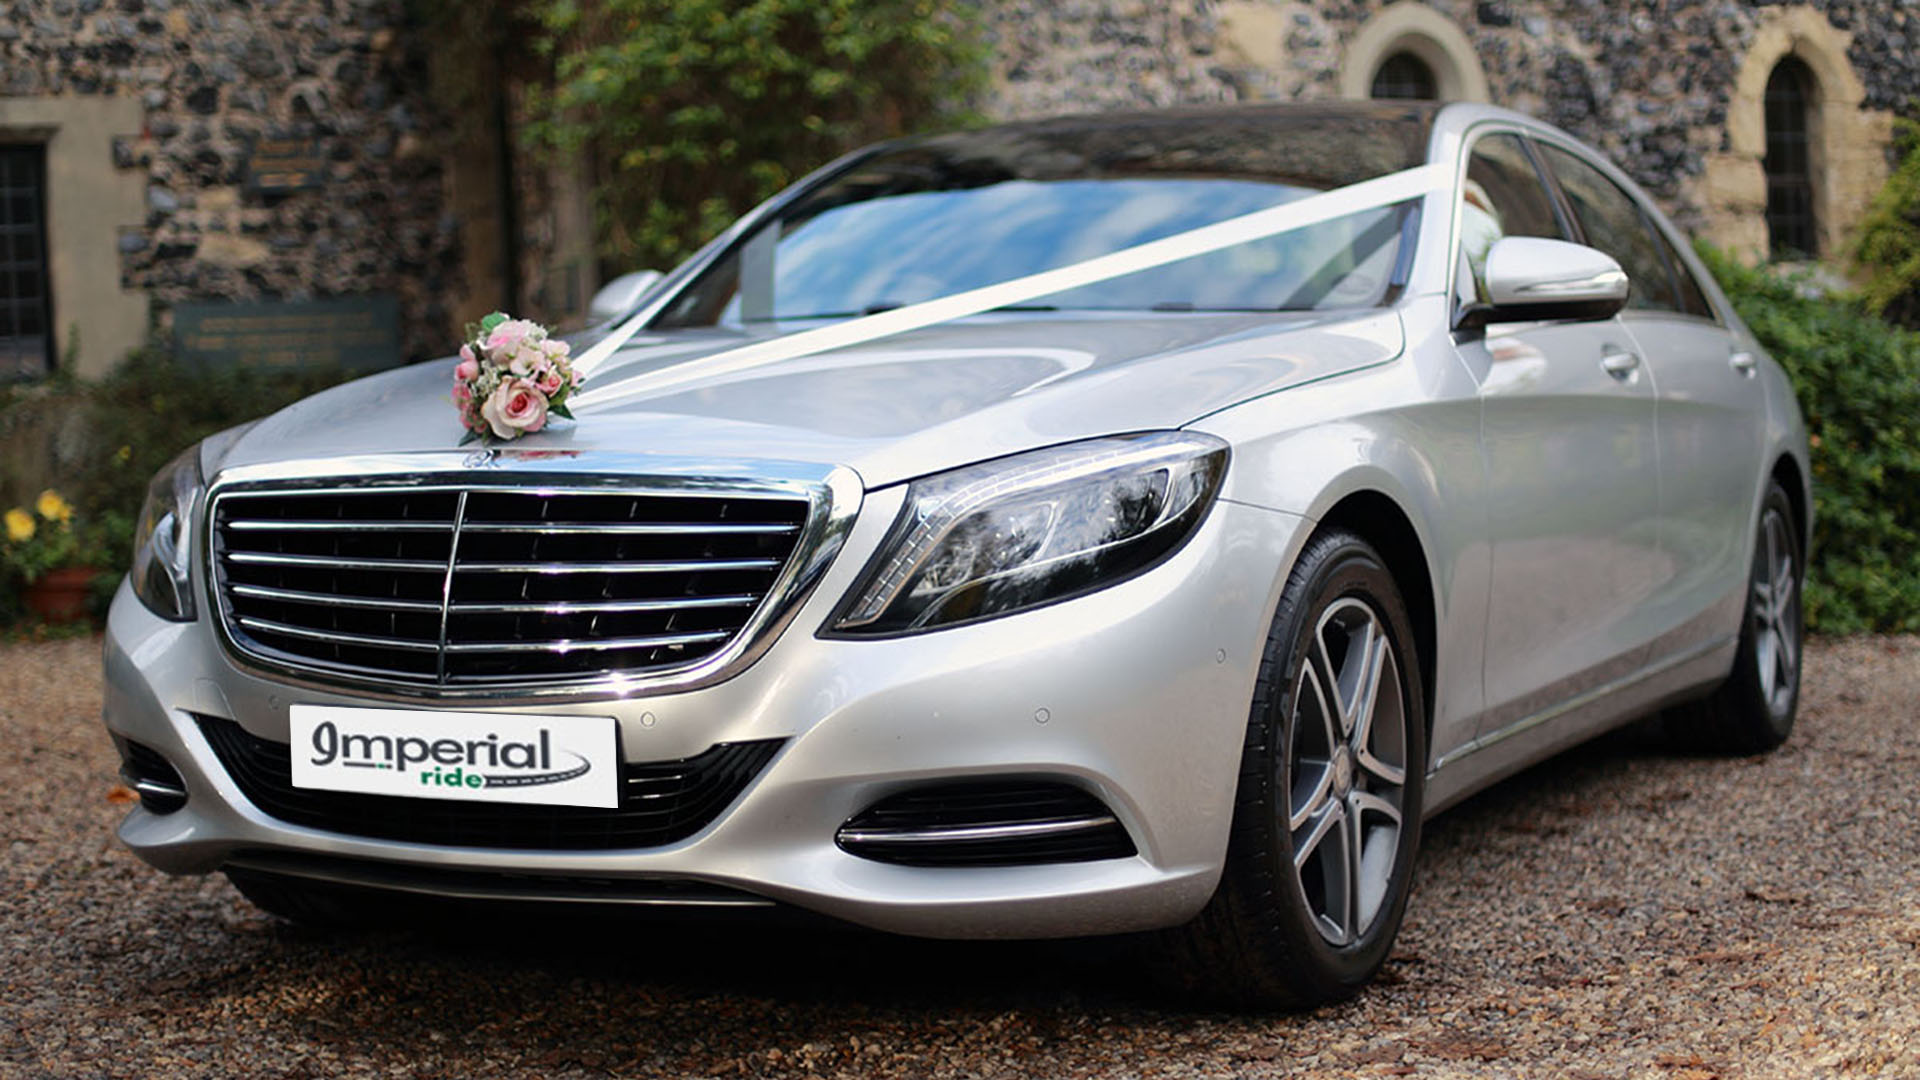 s-class-wedding-hire-in-croydon